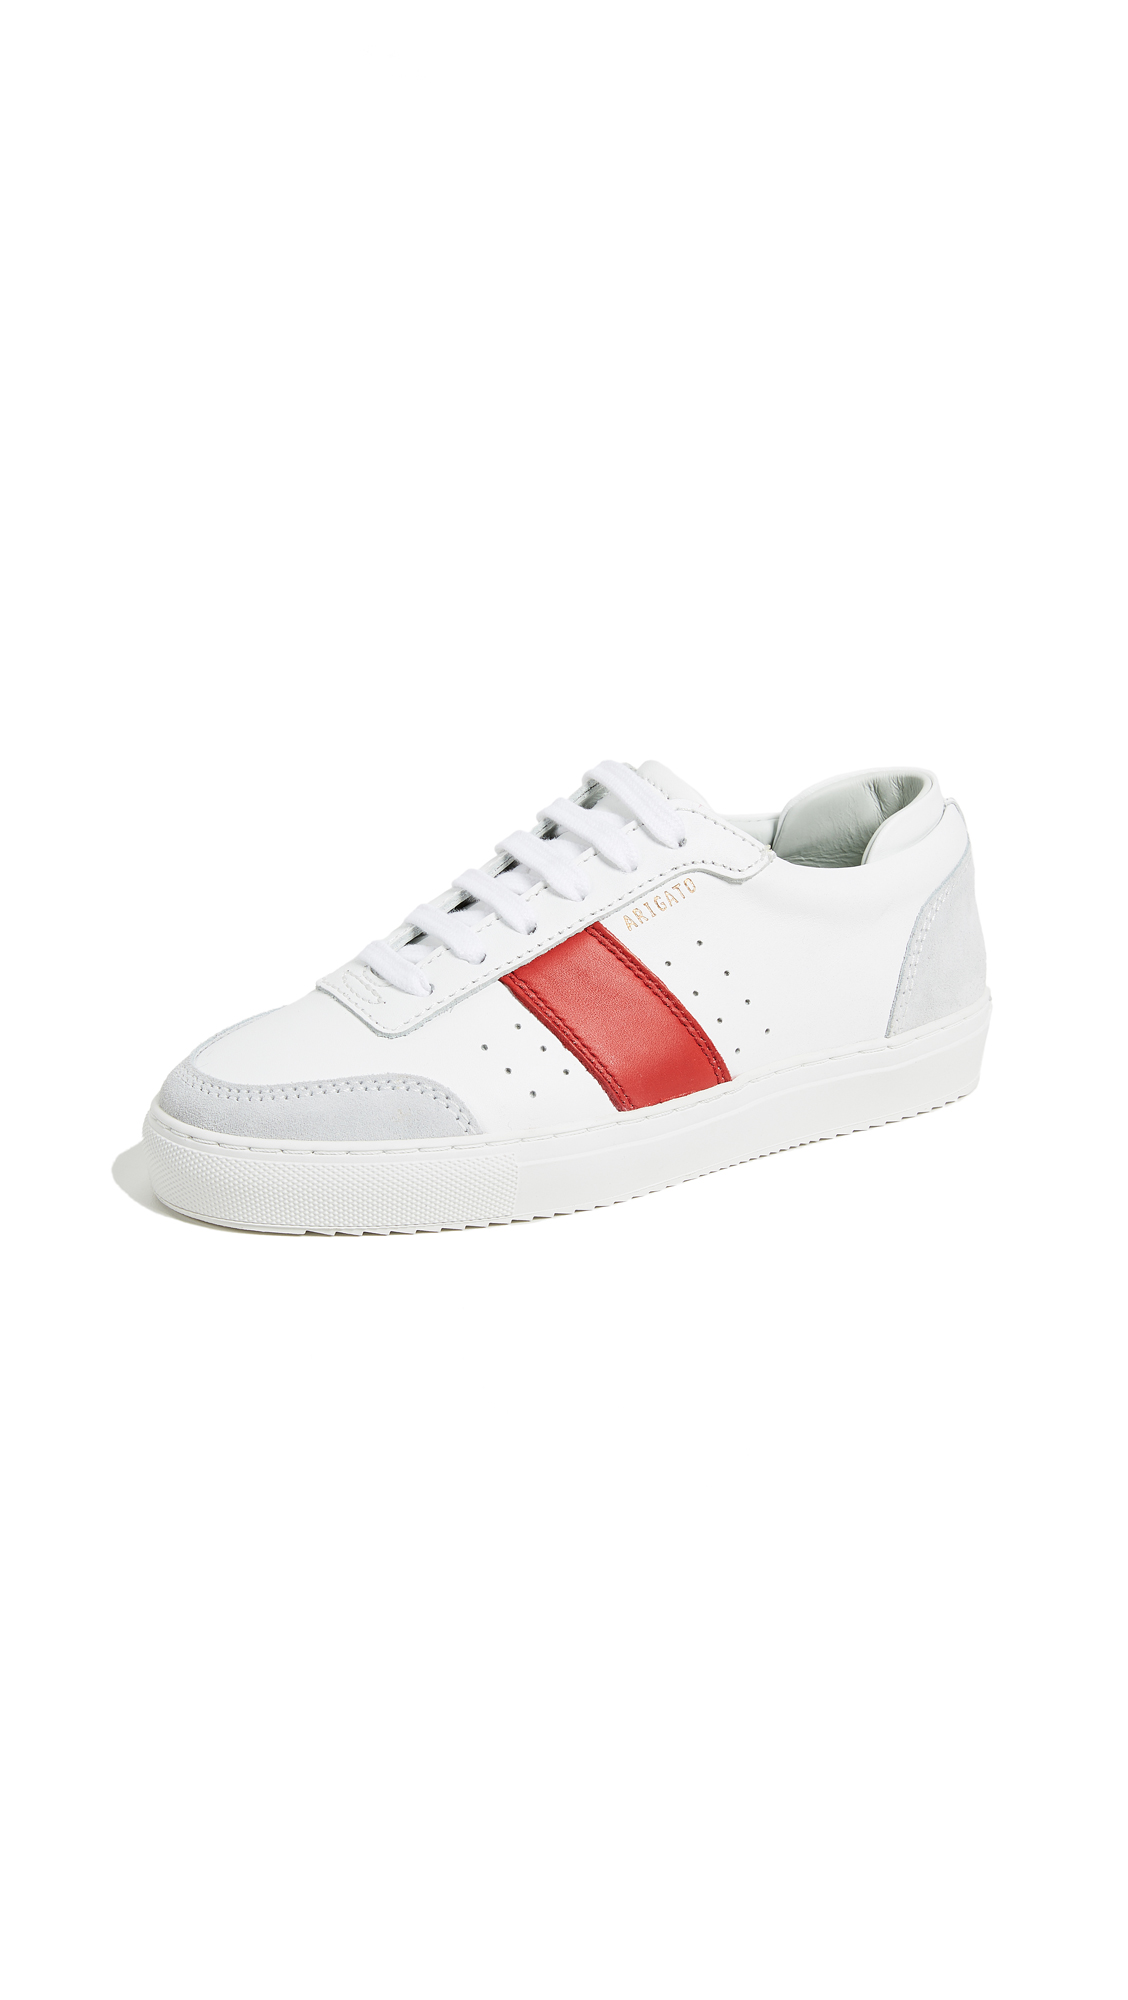 Axel Arigato Dunk Sneakers - White/Red